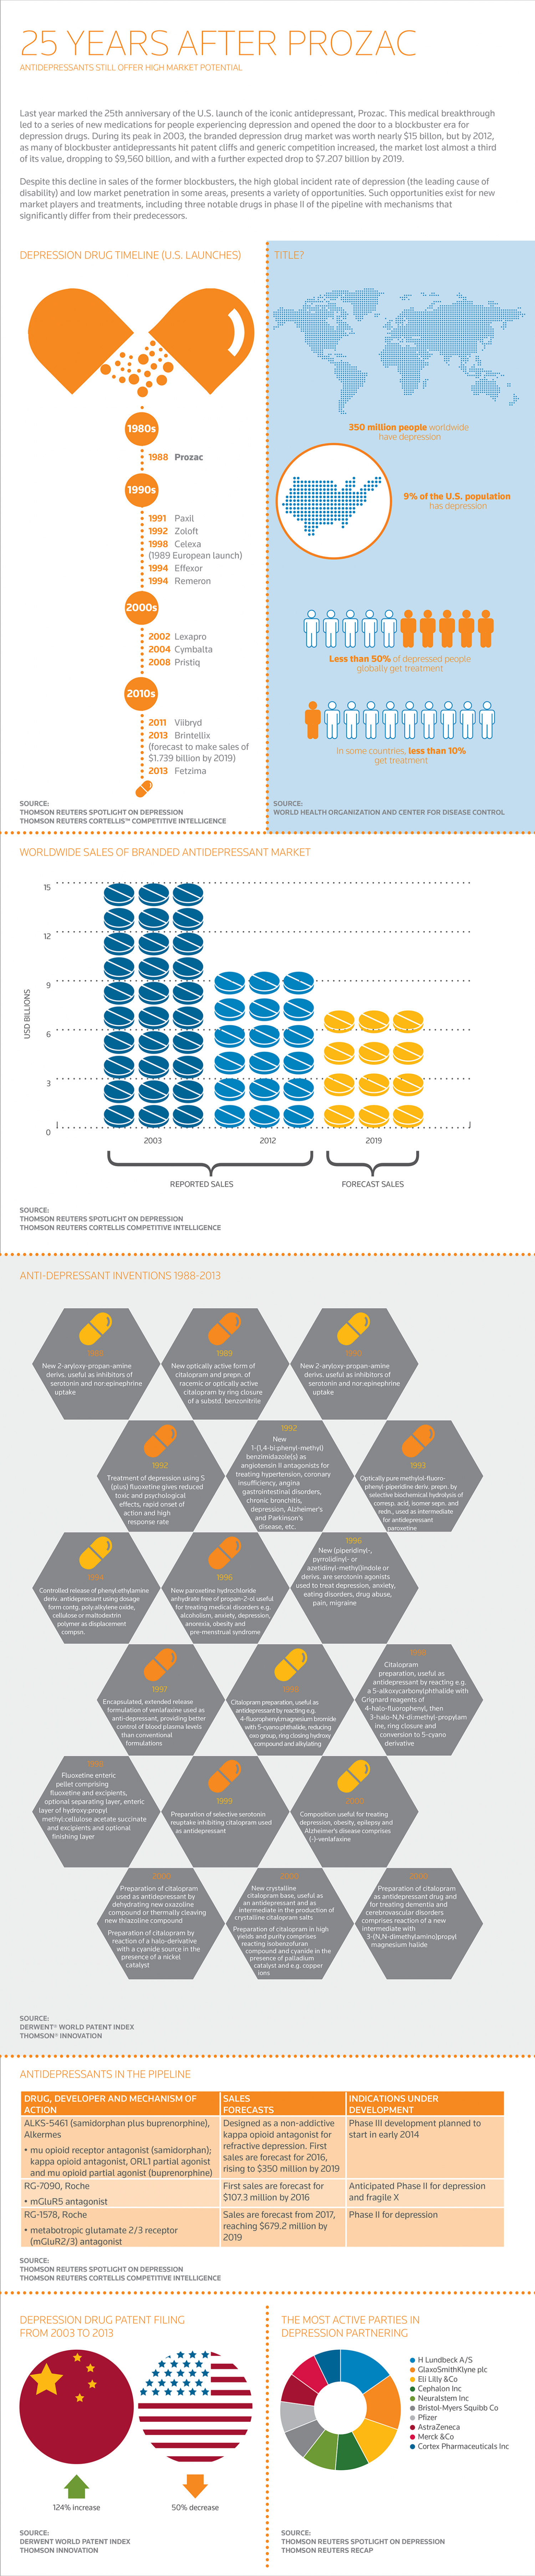 25 Years After Prozac Infographic